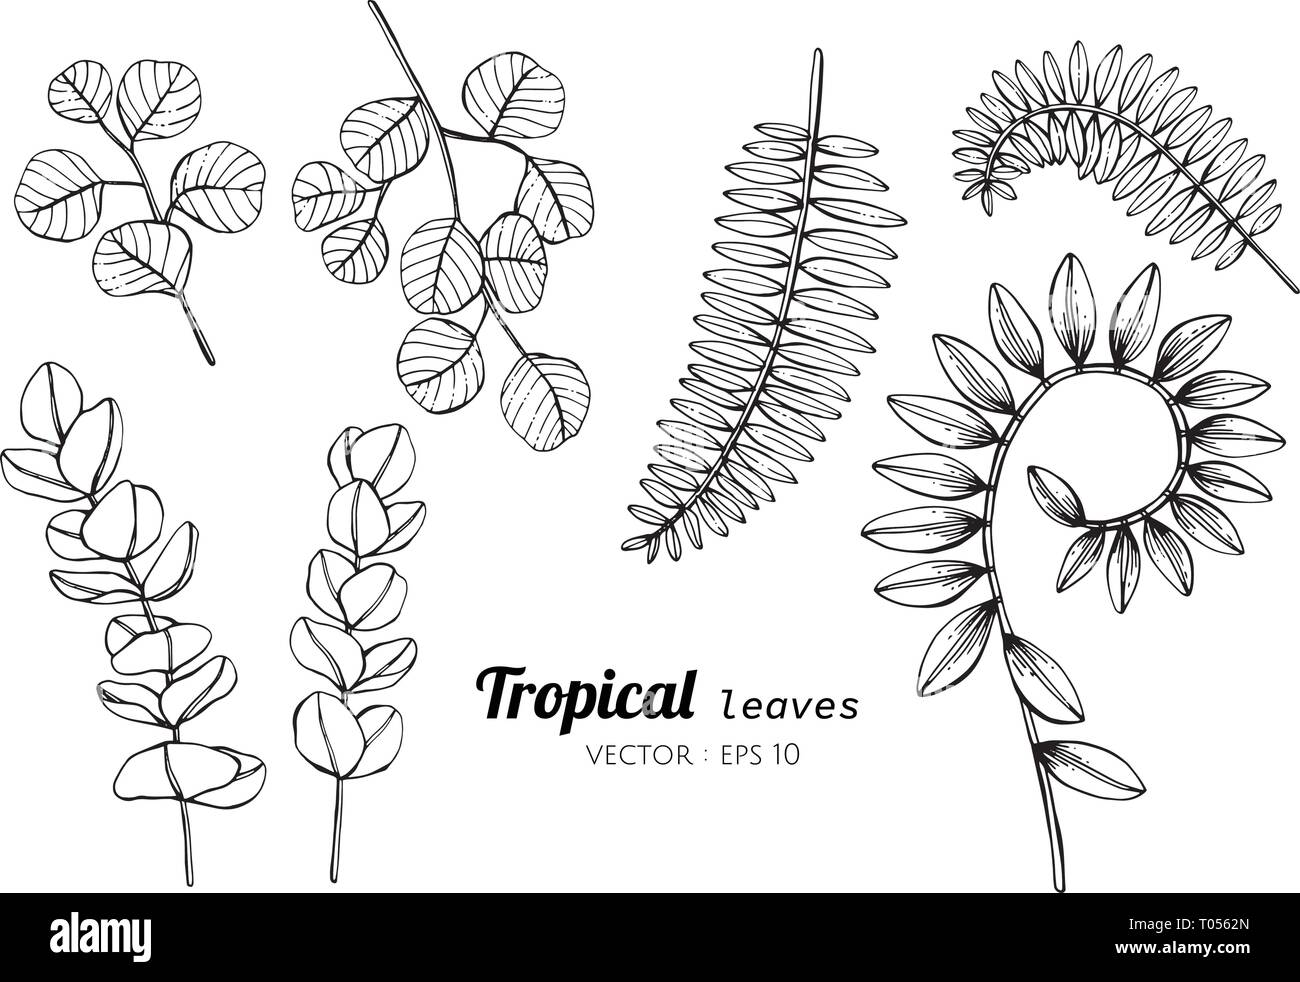 Collection set of Tropical leaves drawing illustration. for pattern, logo, template, banner, posters, invitation and greeting card design. - Stock Image